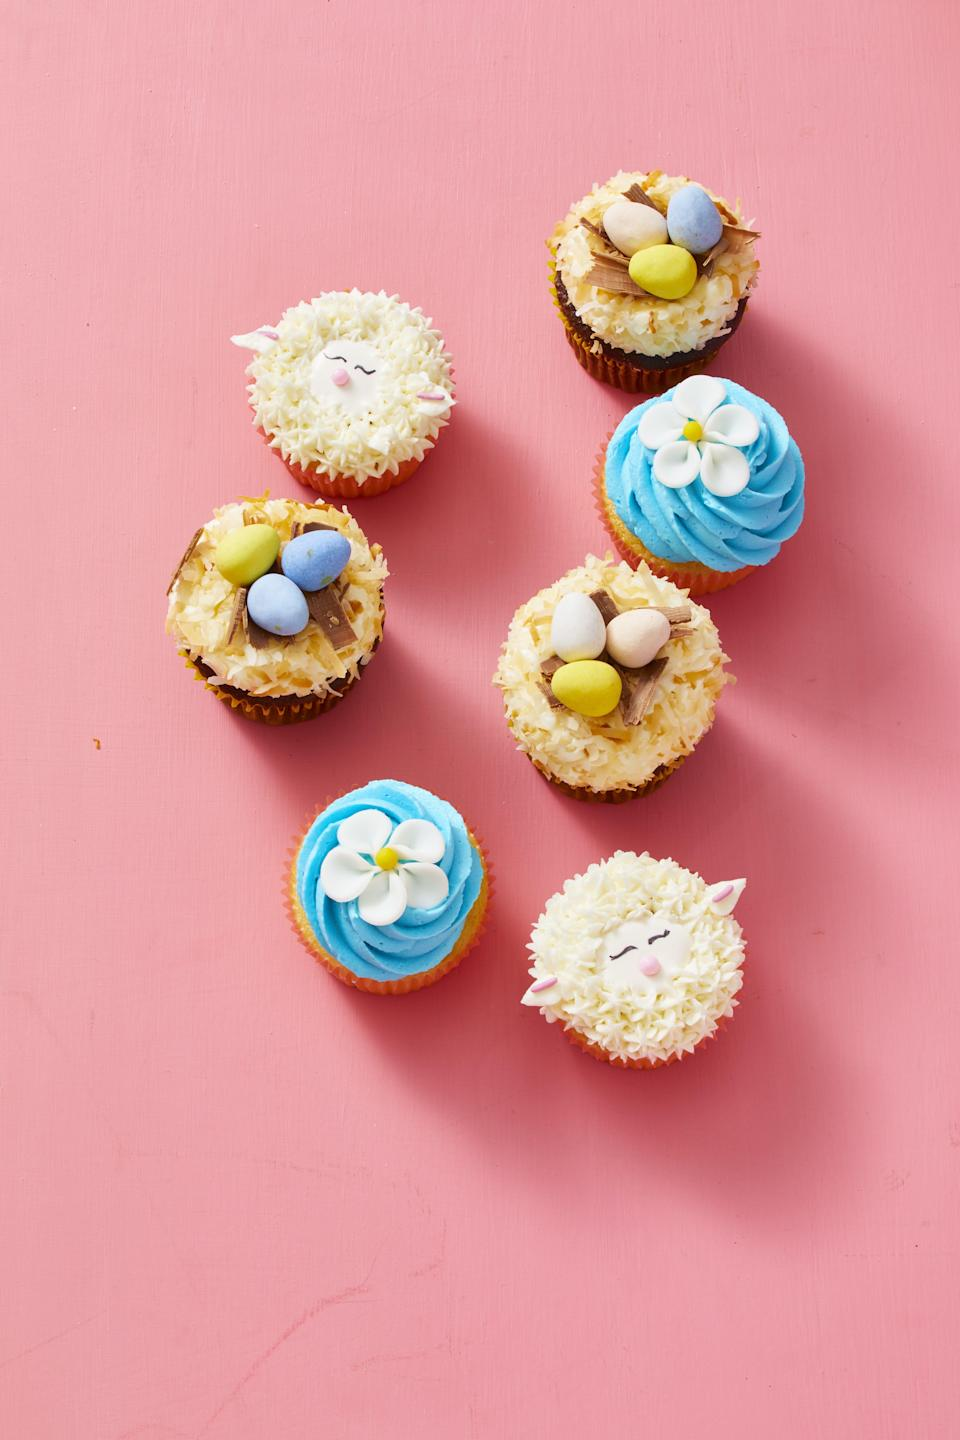 """<p>Some people prefer <a href=""""https://www.goodhousekeeping.com/food-recipes/dessert/g5078/easter-cookies/"""" rel=""""nofollow noopener"""" target=""""_blank"""" data-ylk=""""slk:Easter cookies"""" class=""""link rapid-noclick-resp"""">Easter cookies</a>. Others — like you! — think <a href=""""https://www.goodhousekeeping.com/food-recipes/dessert/g2411/cupcake-ideas"""" rel=""""nofollow noopener"""" target=""""_blank"""" data-ylk=""""slk:frosted cupcakes"""" class=""""link rapid-noclick-resp"""">frosted cupcakes</a> are the ultimate <a href=""""https://www.goodhousekeeping.com/holidays/easter-ideas/"""" rel=""""nofollow noopener"""" target=""""_blank"""" data-ylk=""""slk:Easter treat"""" class=""""link rapid-noclick-resp"""">Easter treat</a>. These easy cupcake ideas hit all the sweet spots: petite, pretty, and totally photo-worthy. Easter cupcakes adorned with pastel colors, pretty flowers, and dainty butterflies double as the most delicious decorations for any <a href=""""https://www.goodhousekeeping.com/holidays/easter-ideas/g261/easy-easter-buffet/"""" rel=""""nofollow noopener"""" target=""""_blank"""" data-ylk=""""slk:Easter brunch"""" class=""""link rapid-noclick-resp"""">Easter brunch</a> or <a href=""""https://www.goodhousekeeping.com/holidays/easter-ideas/g2353/easter-dinner-menus/"""" rel=""""nofollow noopener"""" target=""""_blank"""" data-ylk=""""slk:Easter dinner"""" class=""""link rapid-noclick-resp"""">Easter dinner</a>. They may even outshine your <a href=""""https://www.goodhousekeeping.com/holidays/easter-ideas/g881/ham-recipes/"""" rel=""""nofollow noopener"""" target=""""_blank"""" data-ylk=""""slk:Easter ham"""" class=""""link rapid-noclick-resp"""">Easter ham</a> this year!<br><br>While a classic chocolate or vanilla cupcake frosted with a classic buttercream is a perfectly adequate dessert for any holiday, you can liven up your decorations and flavors to celebrate the best of spring (bring on the <a href=""""https://www.goodhousekeeping.com/food-recipes/dessert/g4195/lemon-desserts/"""" rel=""""nofollow noopener"""" target=""""_blank"""" data-ylk=""""slk:lemon-flavored sweet treats"""" class=""""link rapid-noclick-resp"""">lemon-flavored sweet """